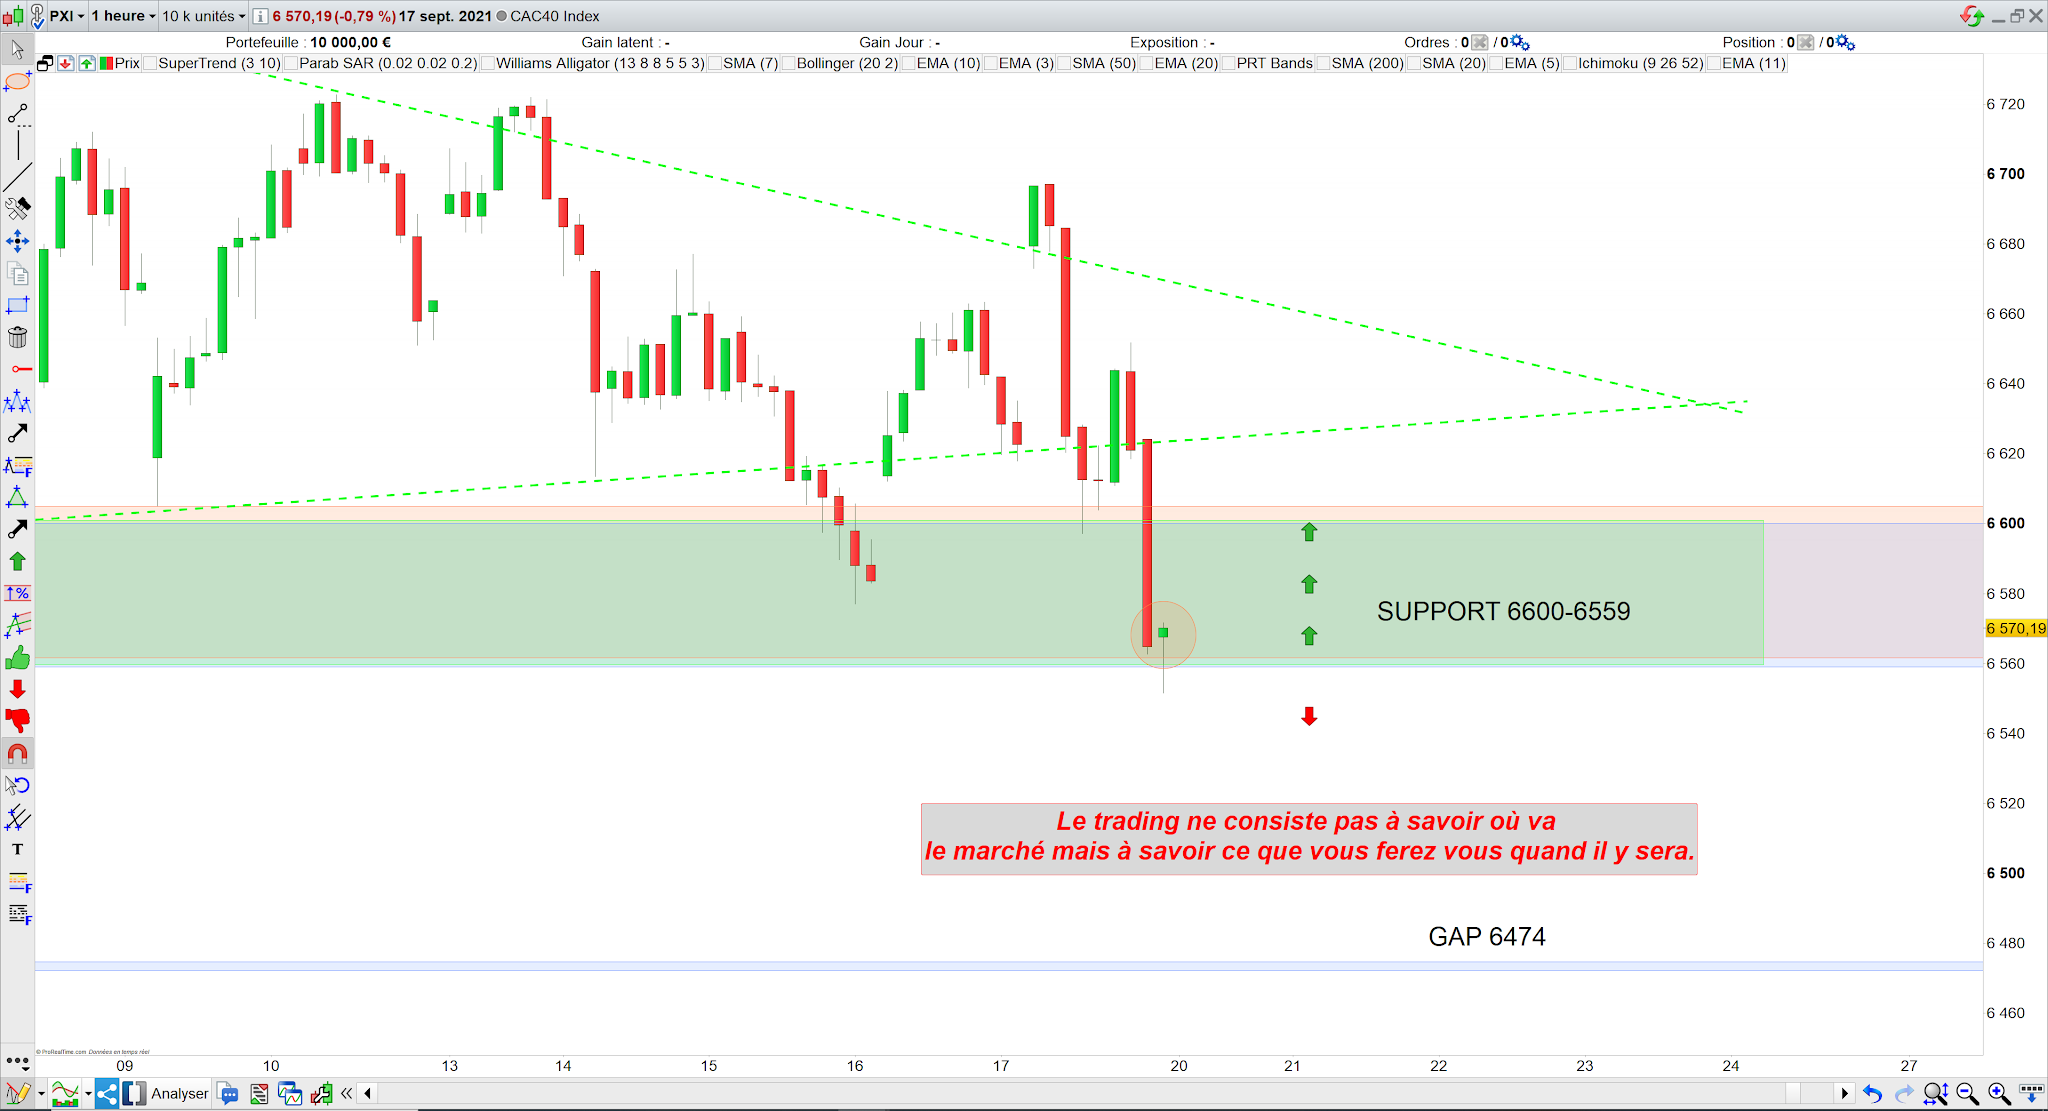 Trading cac40 20/09/21